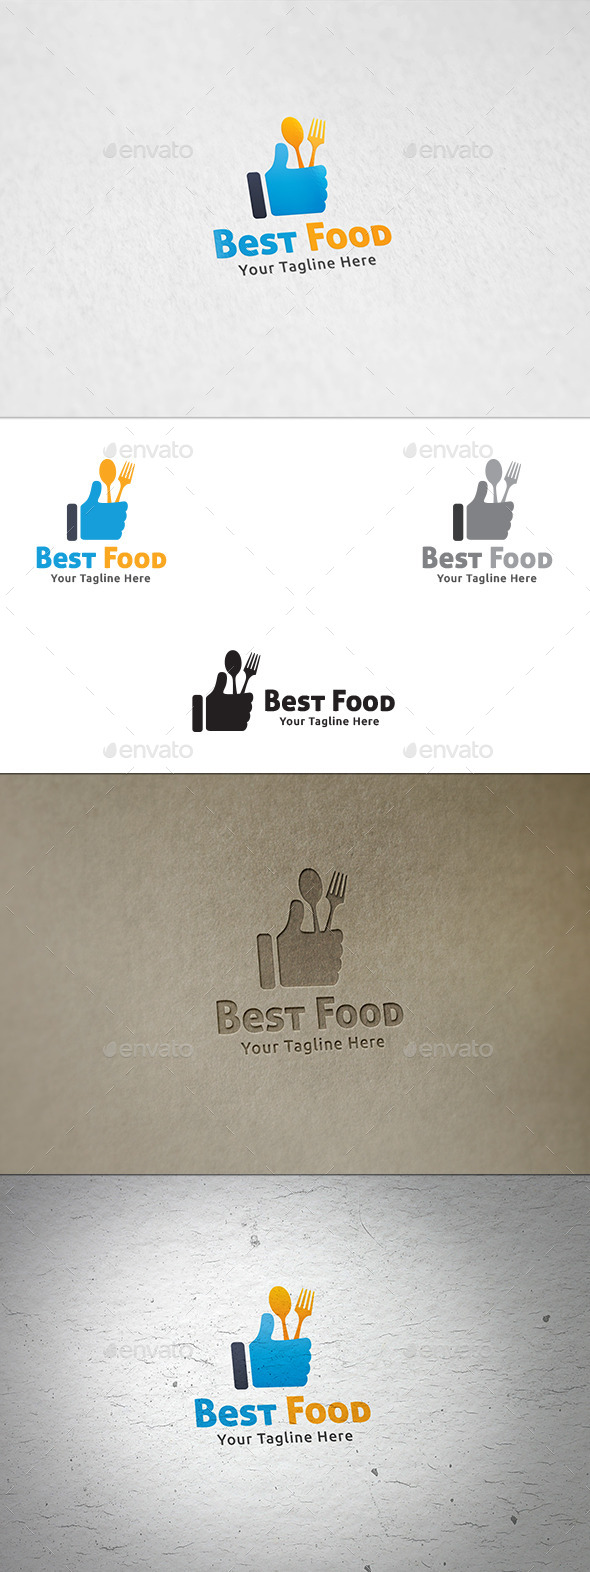 Best Food - Logo Template